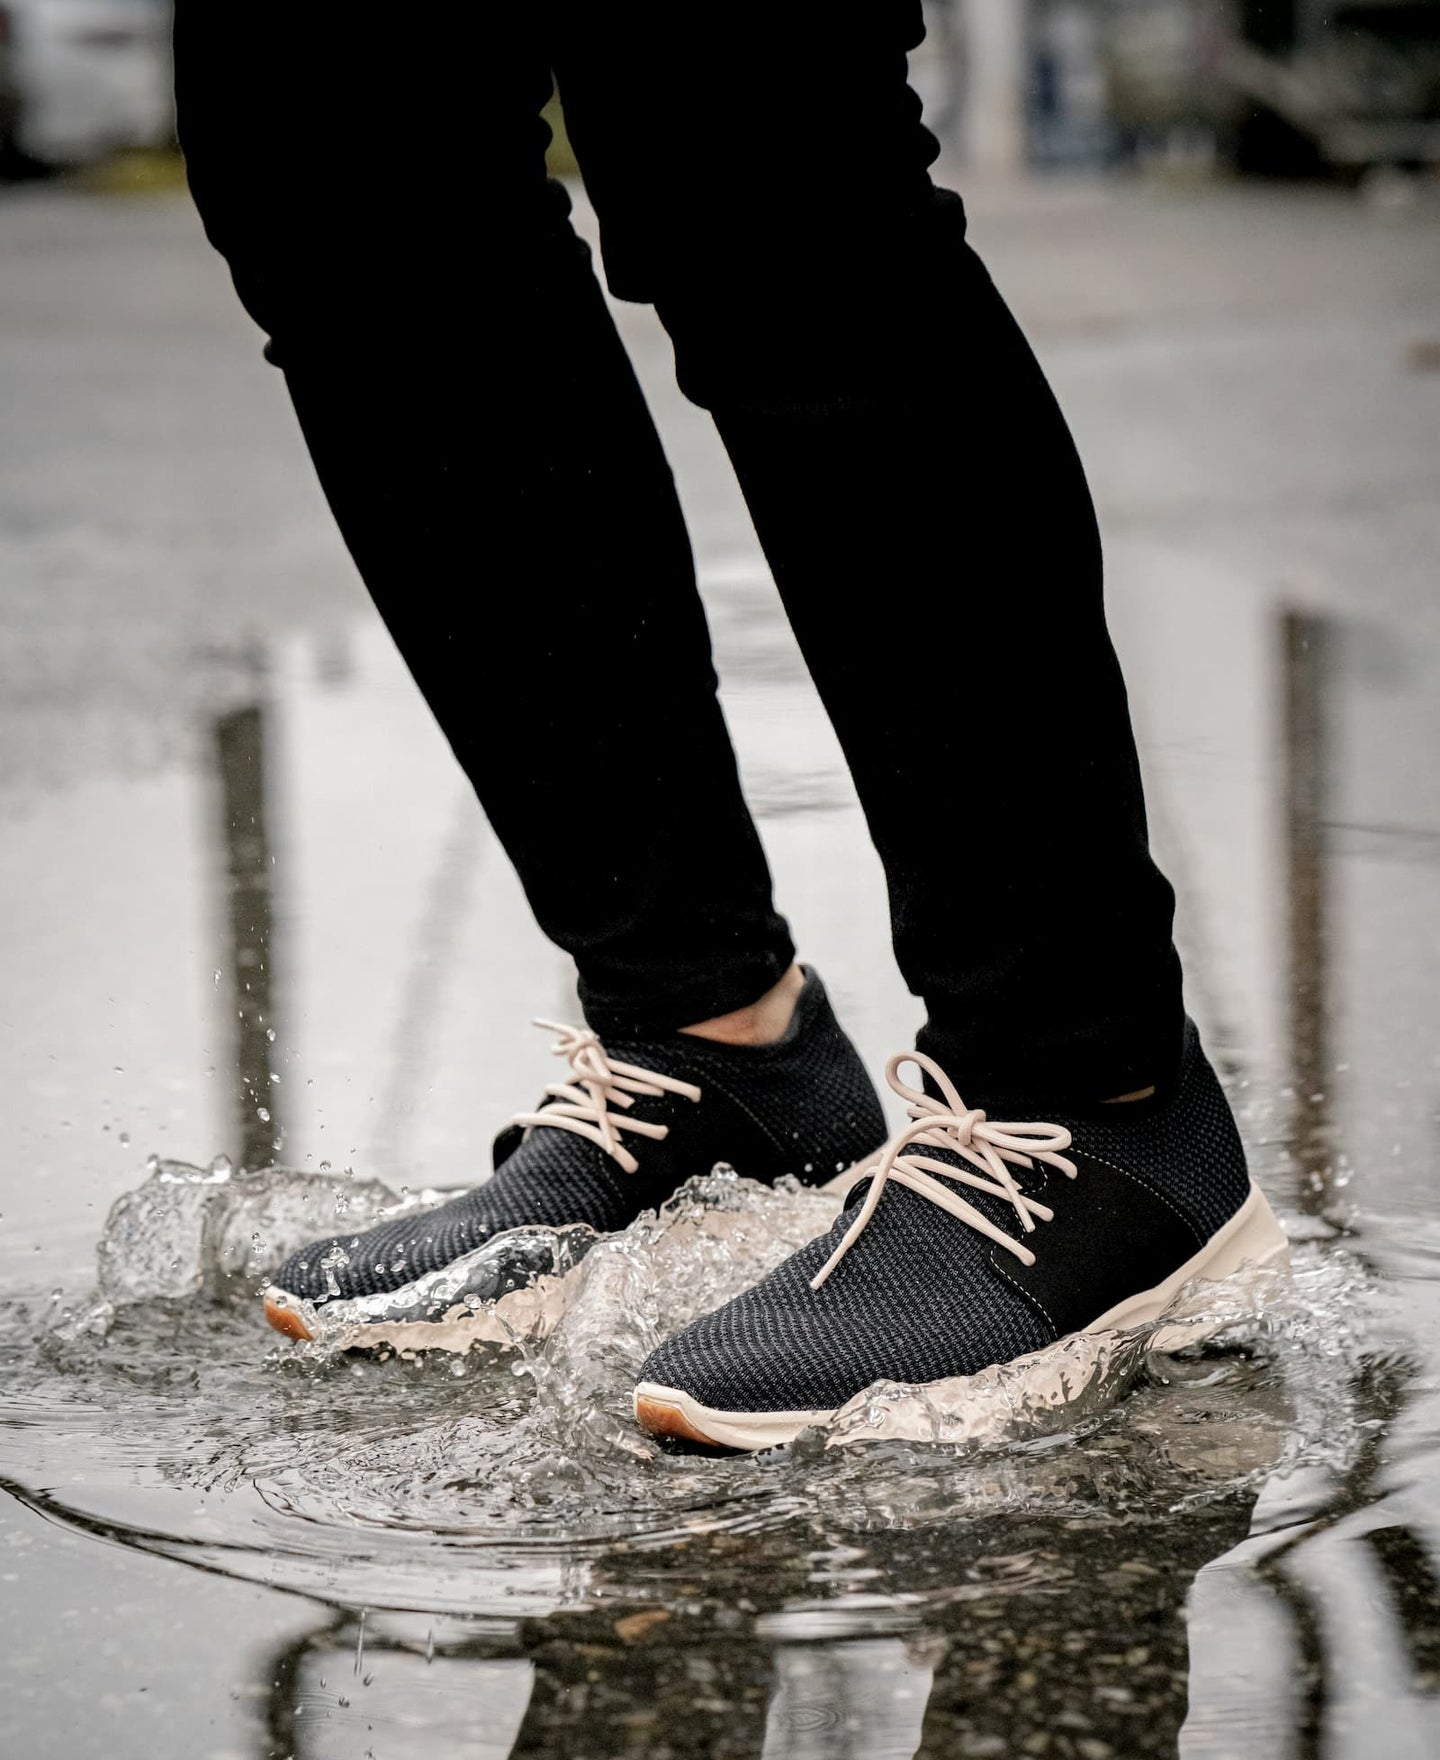 Rain Proof Shoes? Hekk yes.